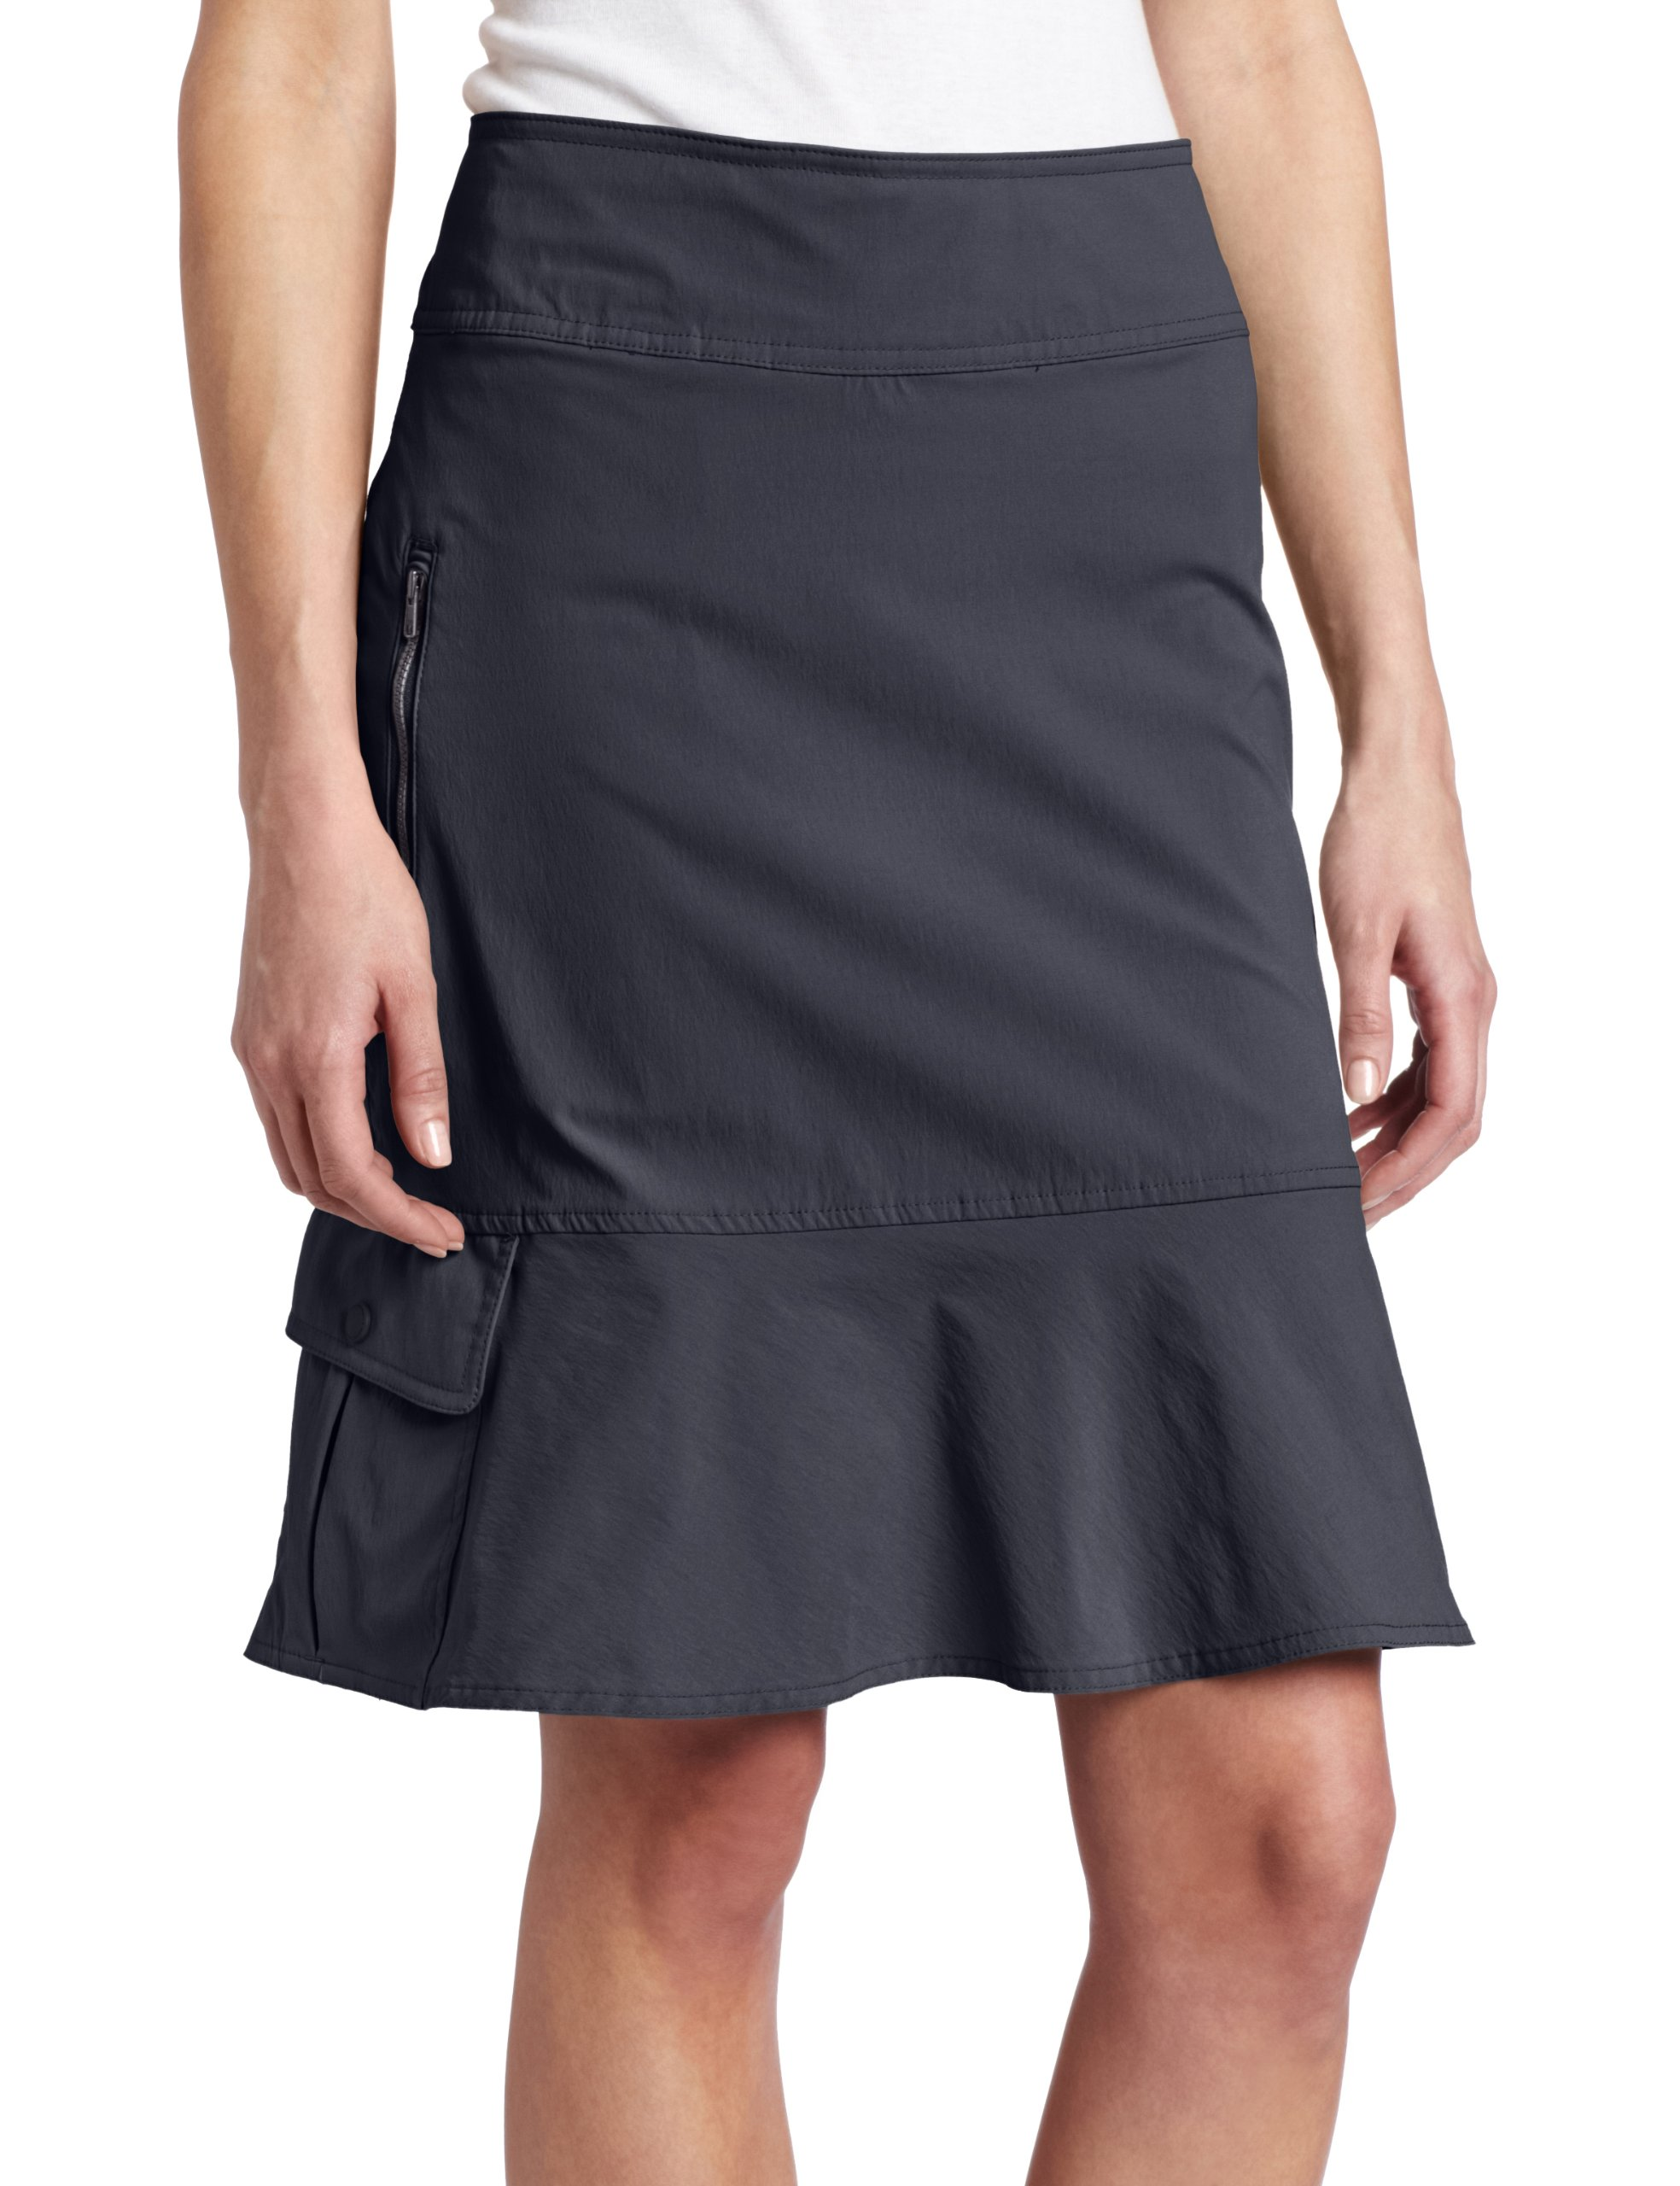 Royal Robbins Women's Discovery Skirt, Jet Black, 2